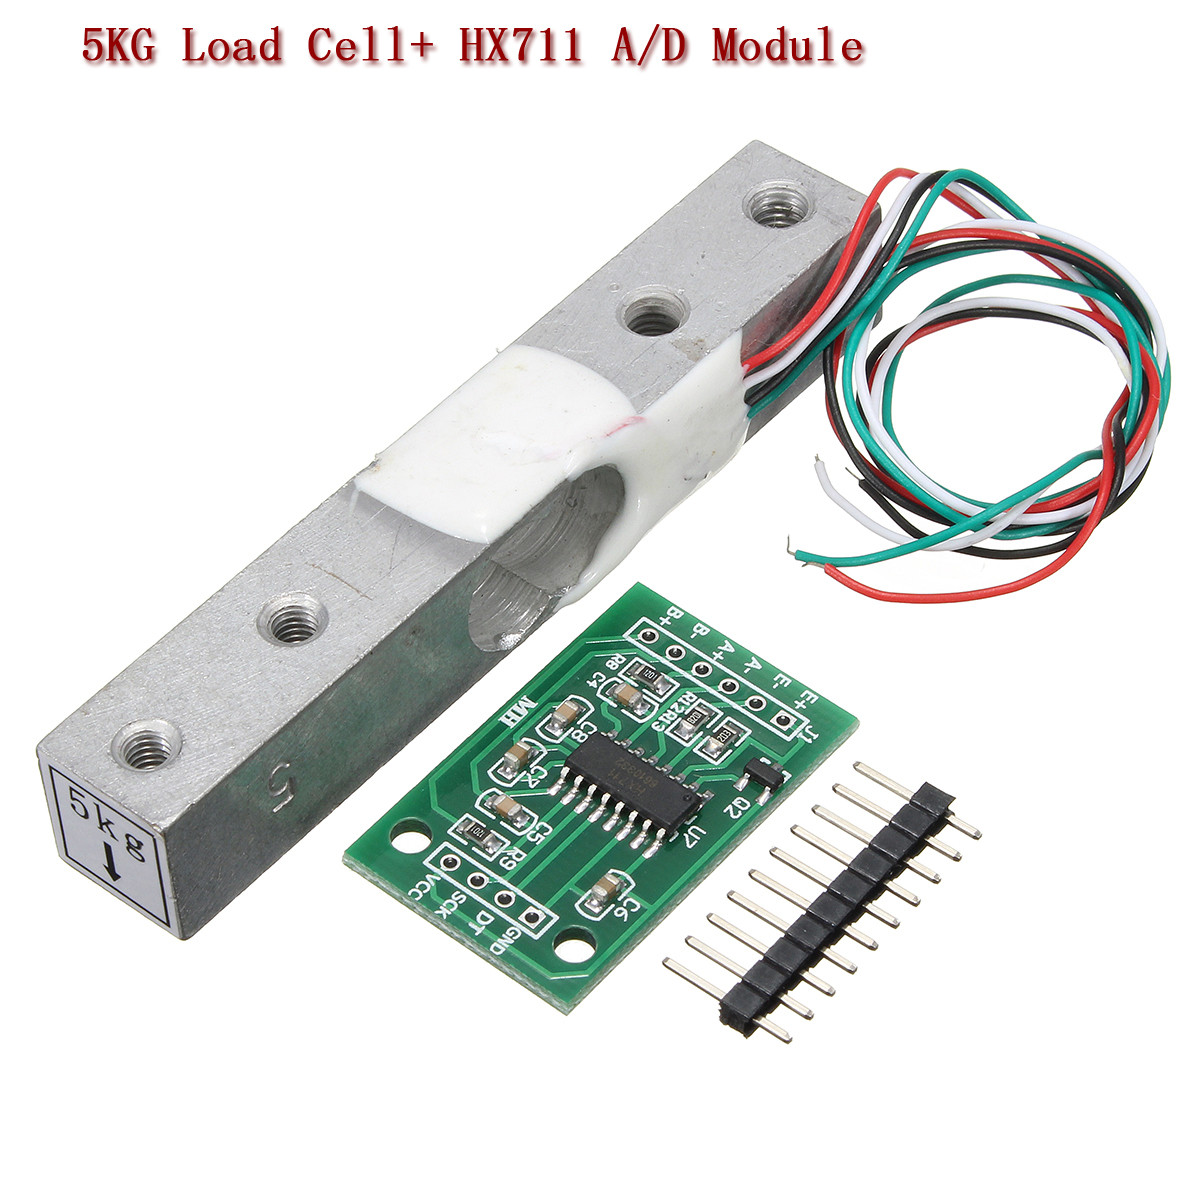 1//5//10//20KG Weight Sensor Scale Load Cell HX711 AD HX711AD Weighing Module